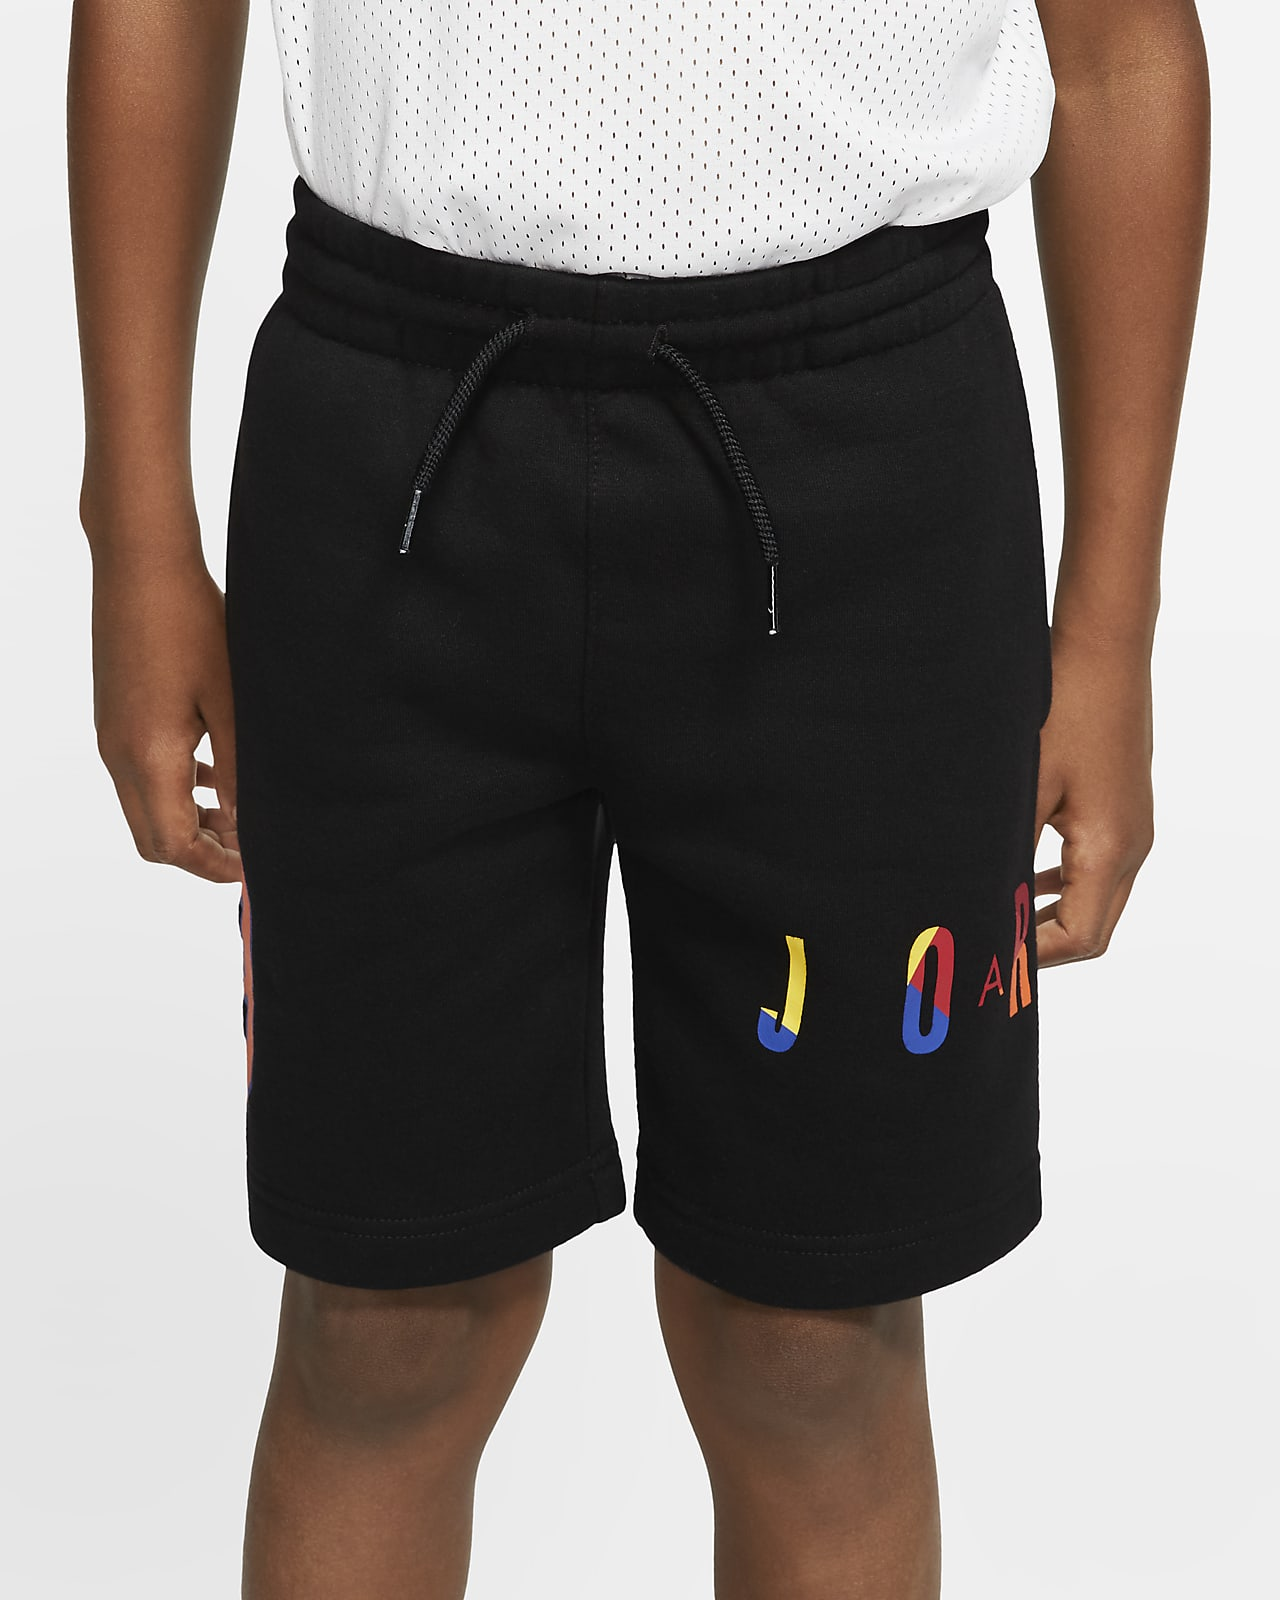 Jordan Air Fleece-Shorts für jüngere Kinder